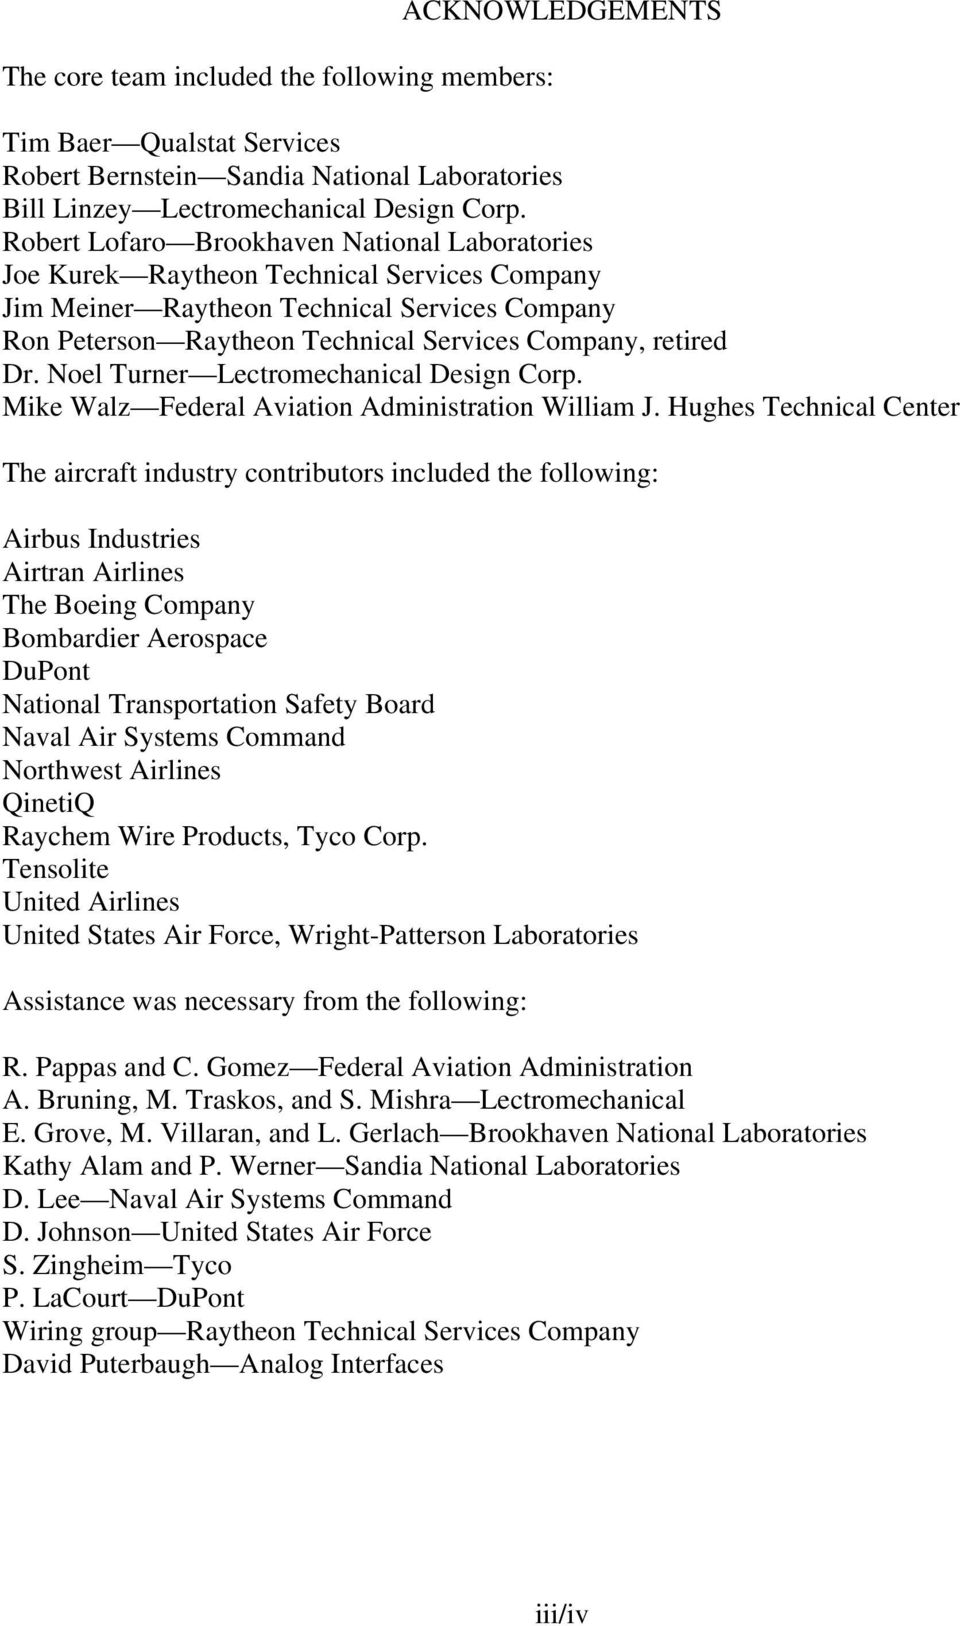 Aircraft Wiring Degradation Study Pdf Raytheon Harness Dr Noel Turner Lectromechanical Design Corp Mike Walz Federal Aviation Administration William J